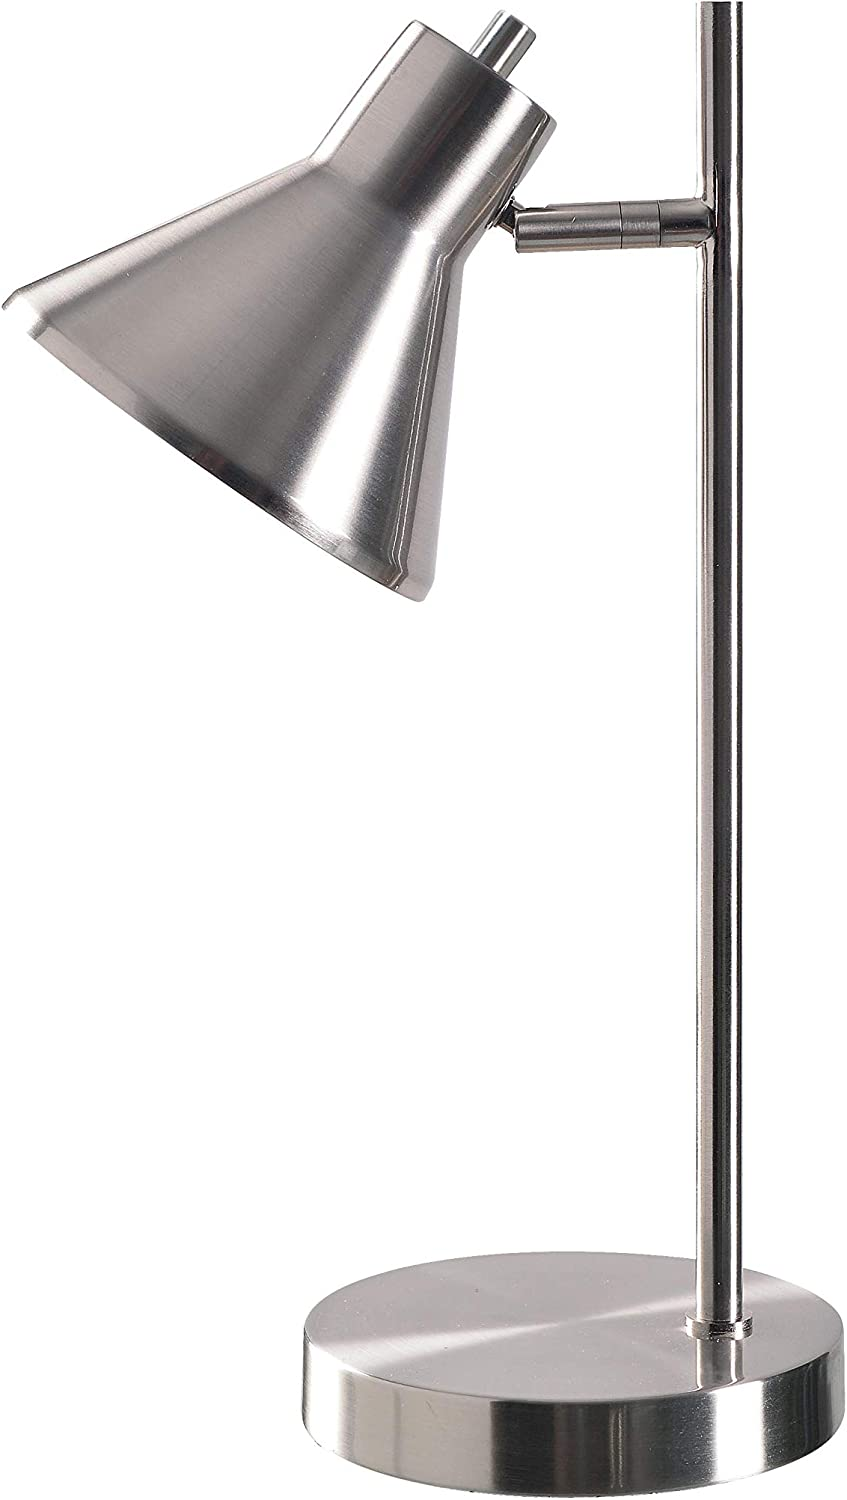 Kenroy Home Modern Desk Lamp 7 Inch Ext 11 Inch Width 18 Inch Height Brushed Steel Finish, Small (33074BS)